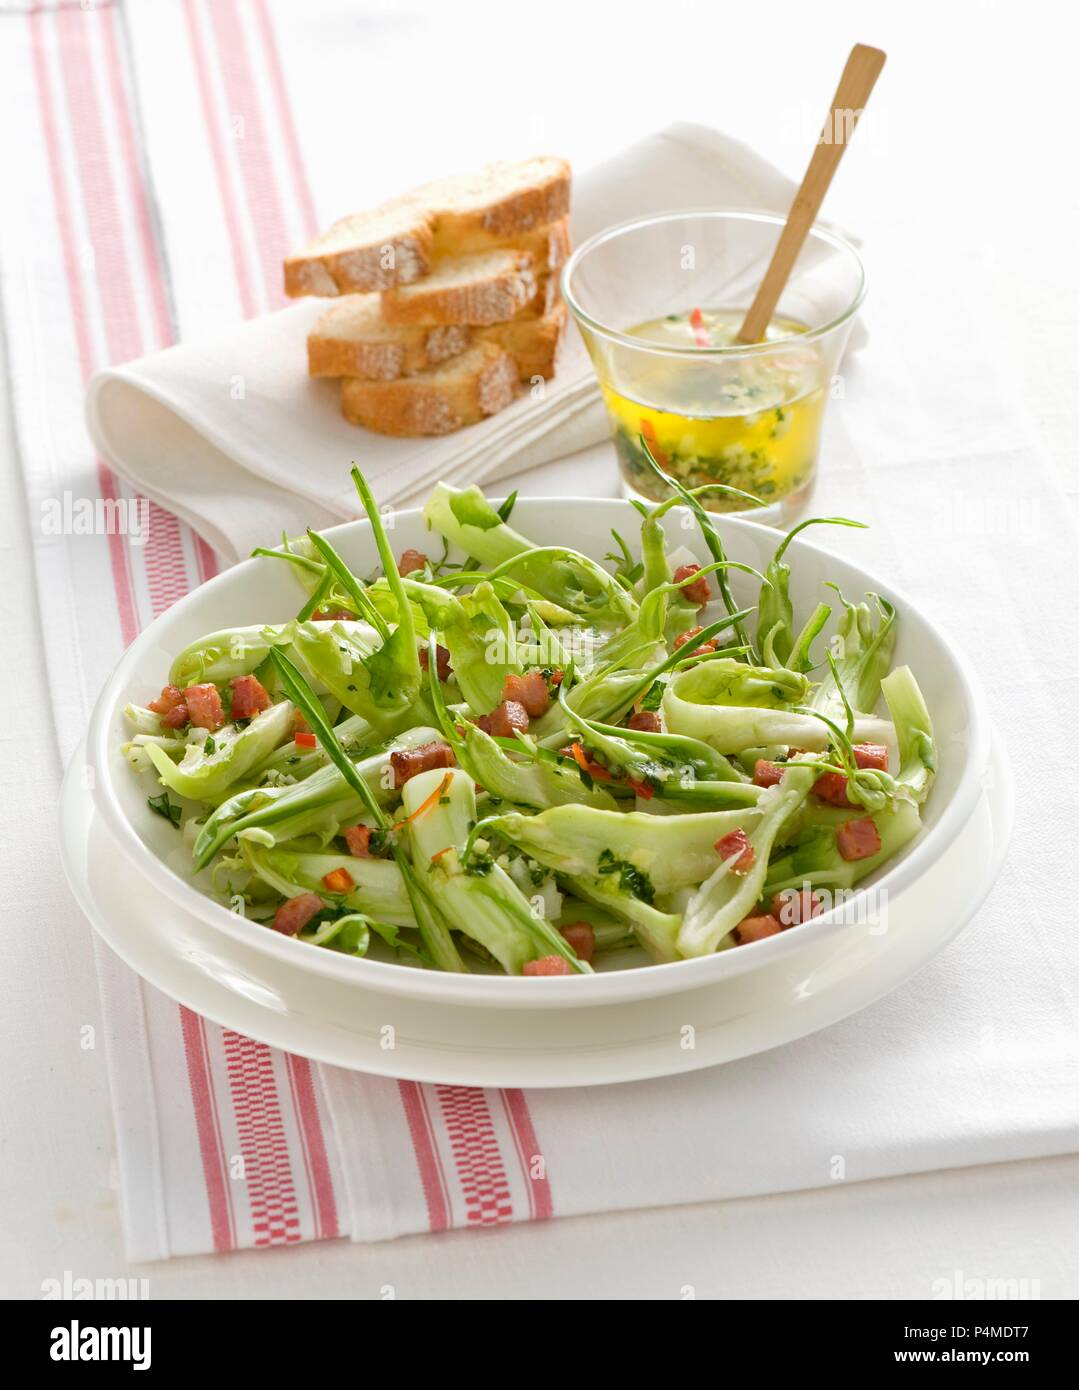 Chicory salad with bacon - Stock Image